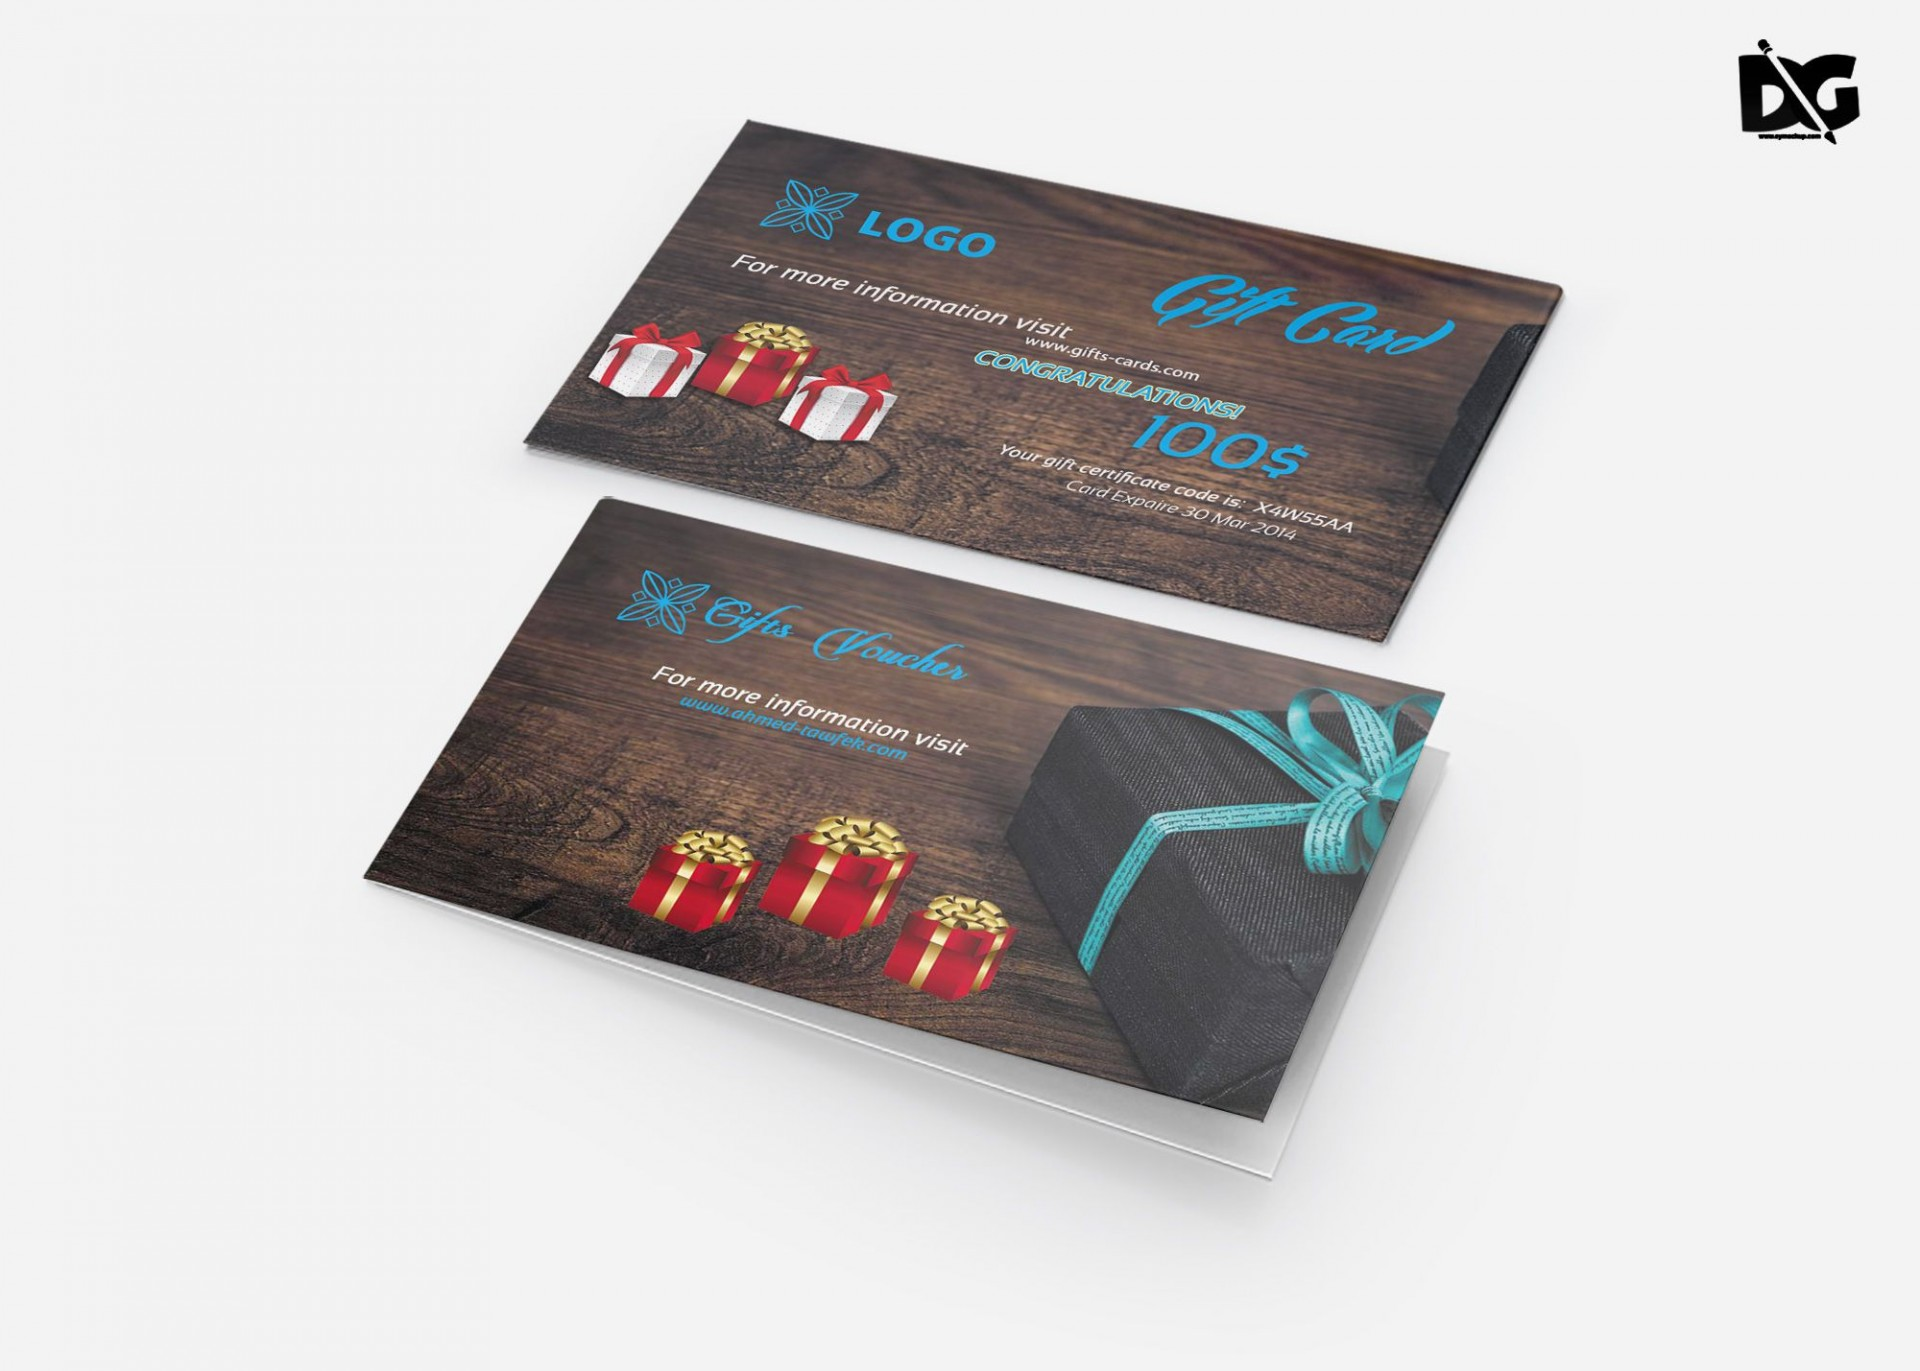 006 Incredible Gift Card Template Psd Idea  Christma Photoshop Free Holder1920